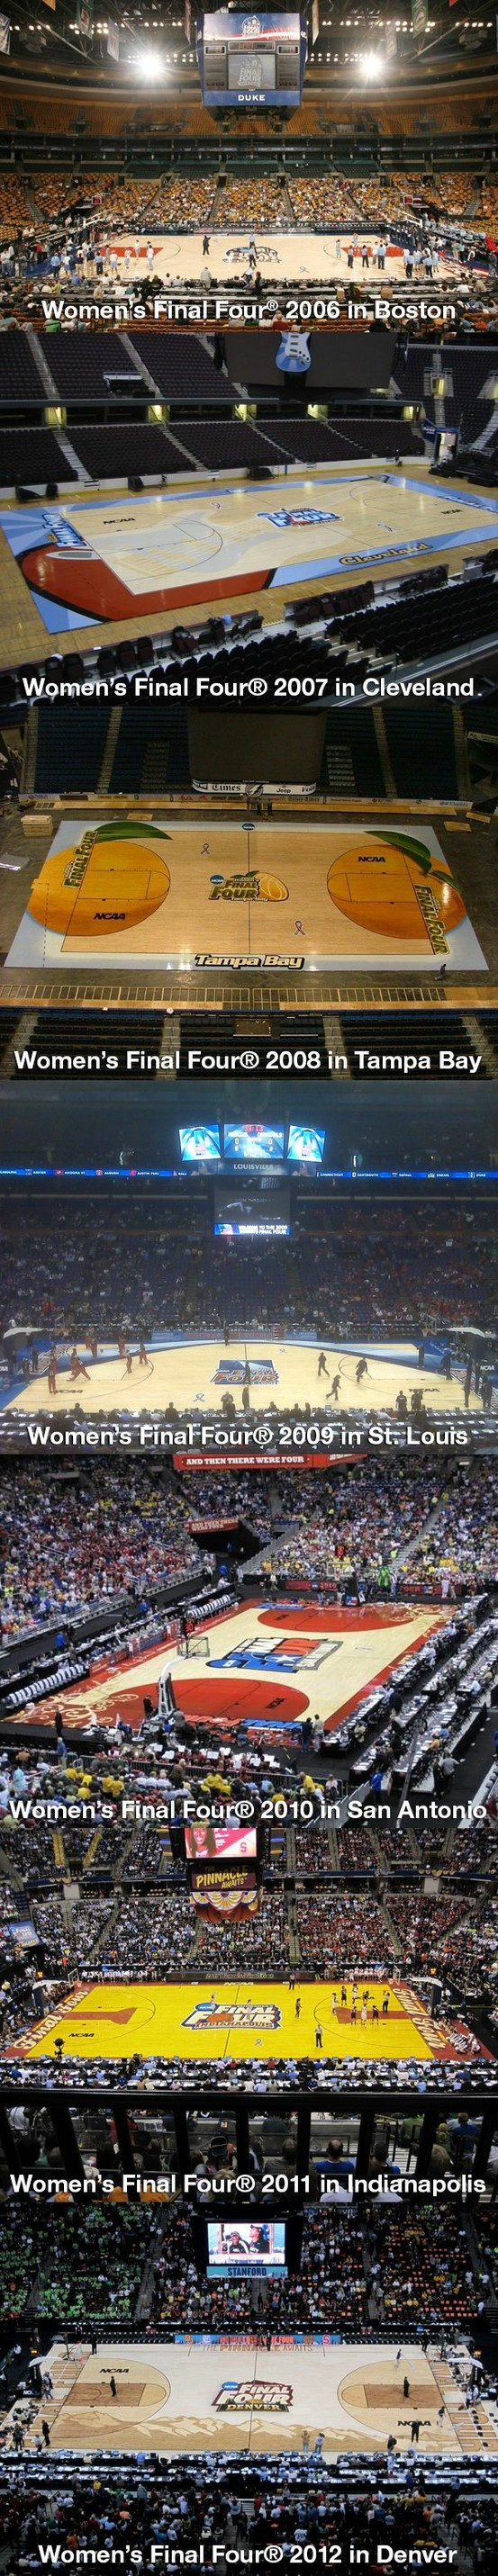 Womenu0027s Final Four(R) Floors Since 2006. Connor Sports Is The Official Floor